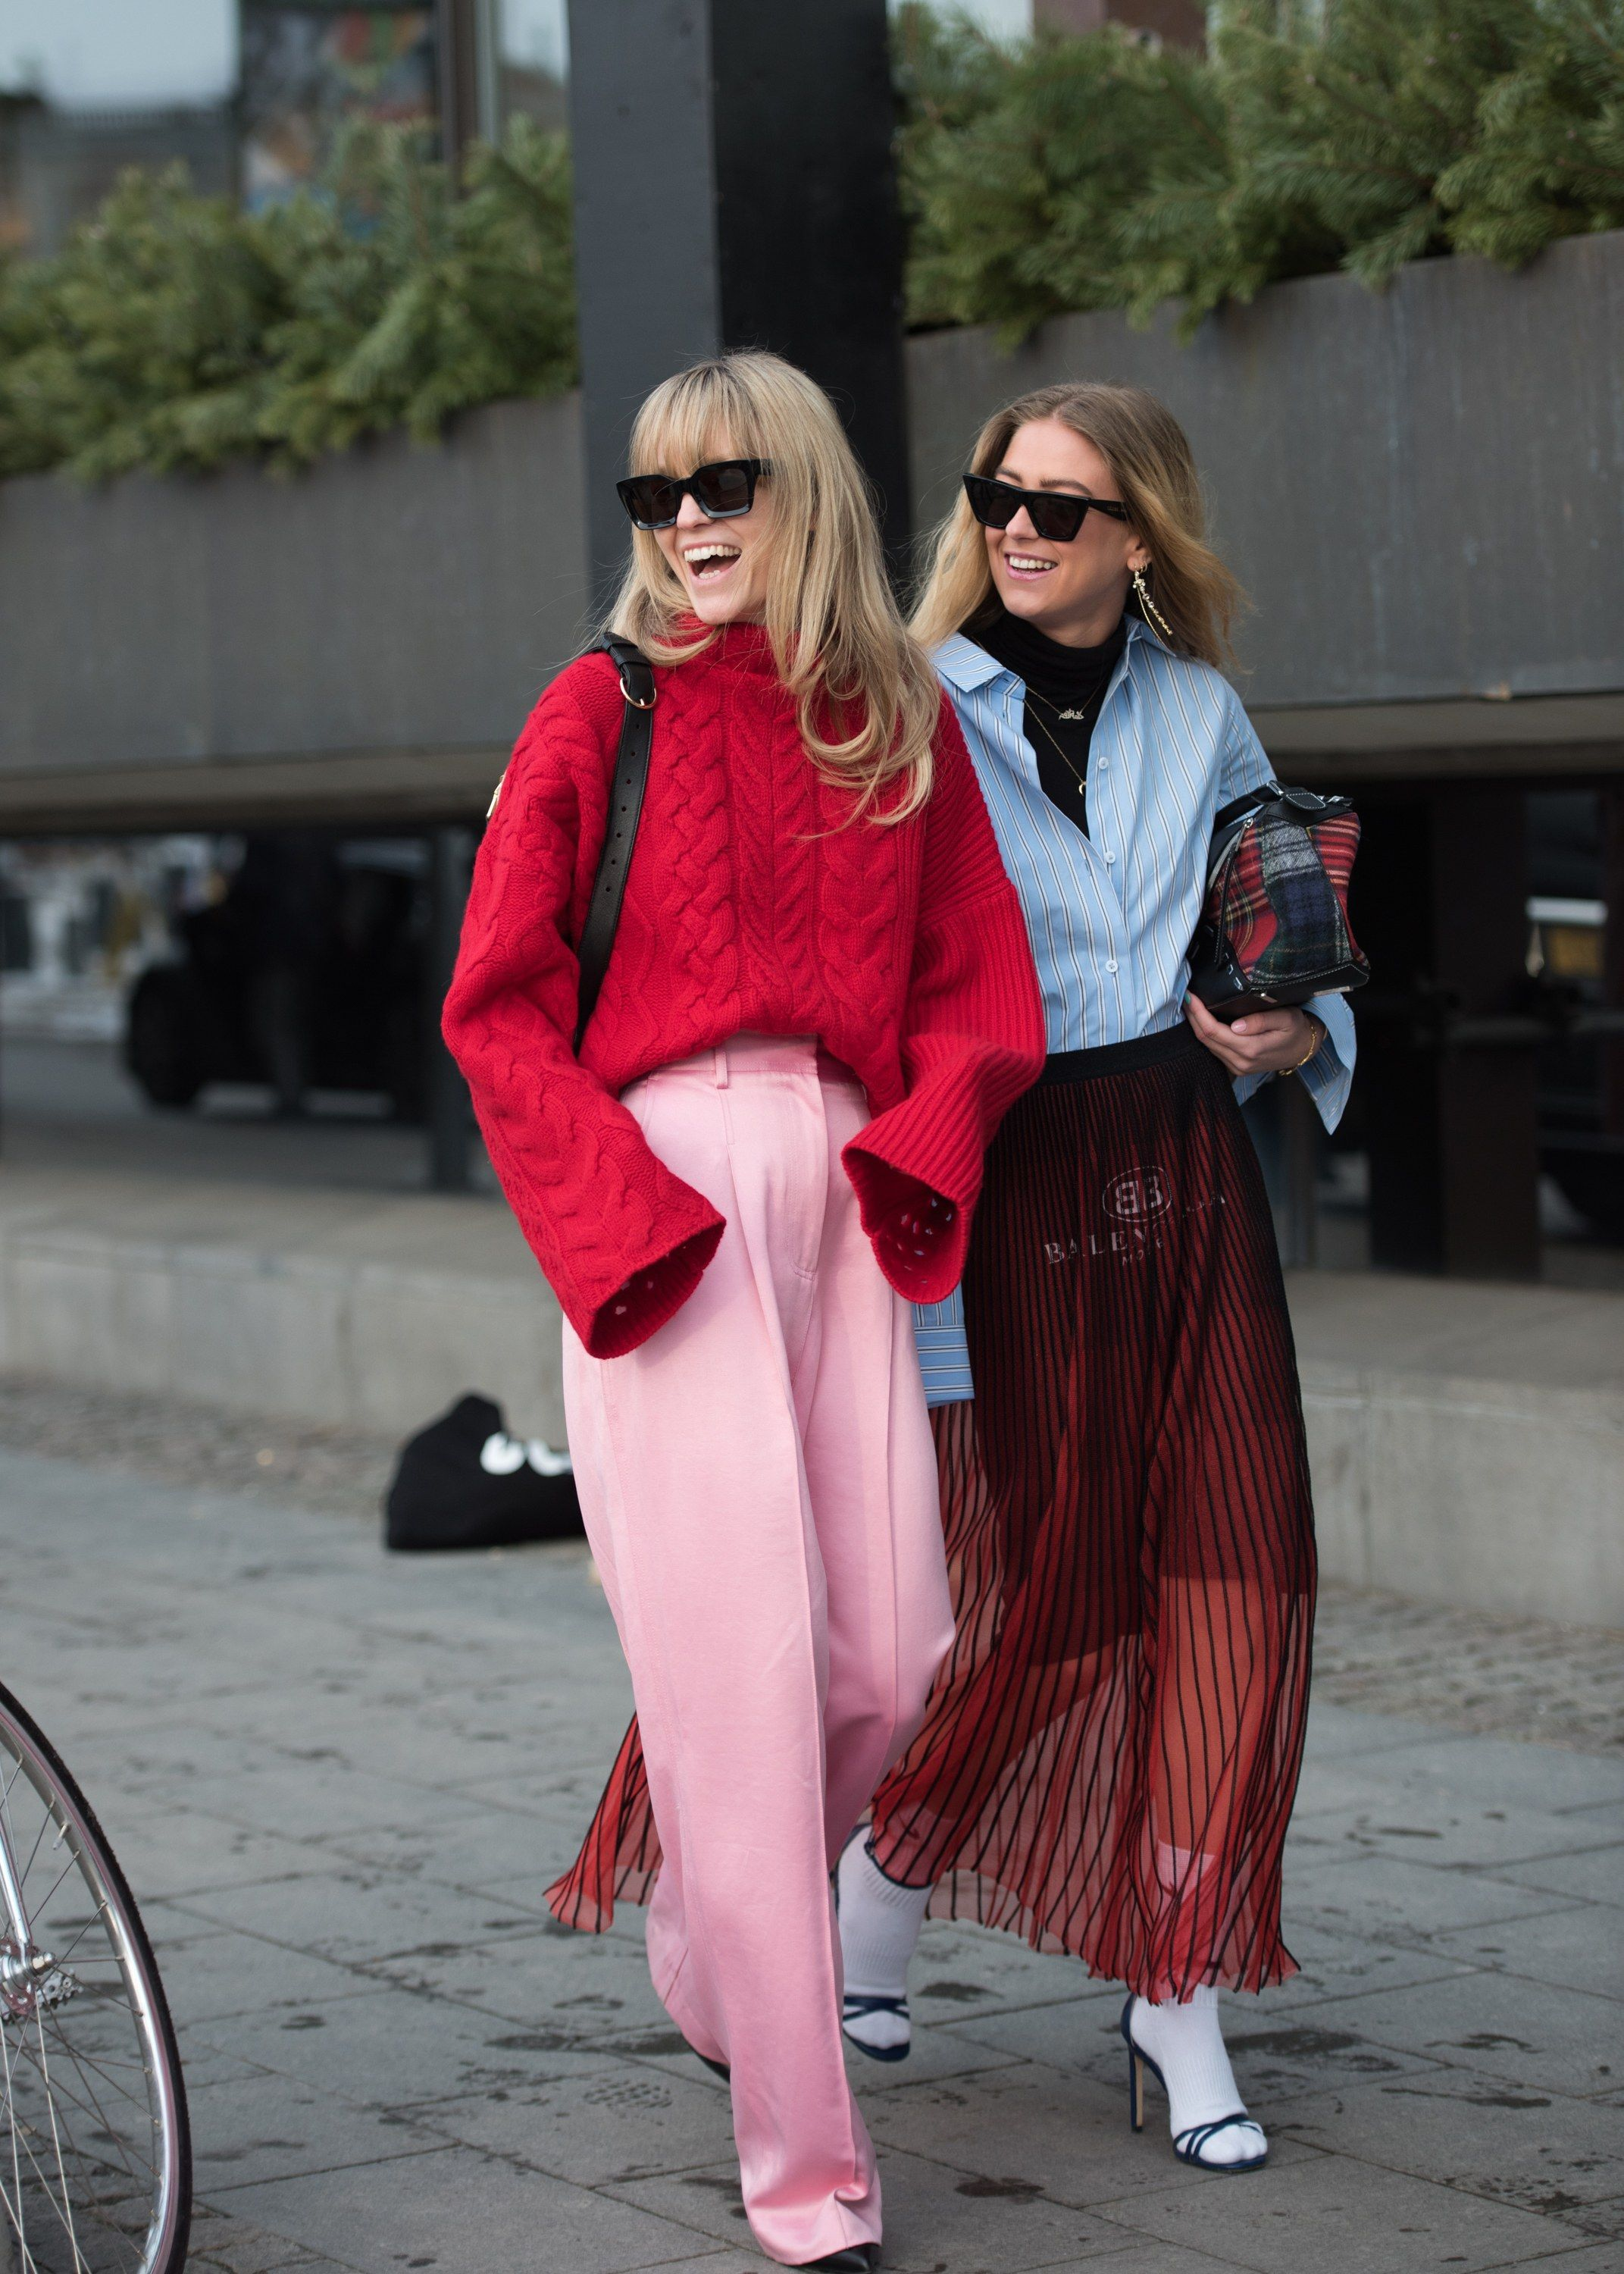 Fall Street Fashion 2013 For Girls: The Best Street Style From Stockholm Fashion Week Fall